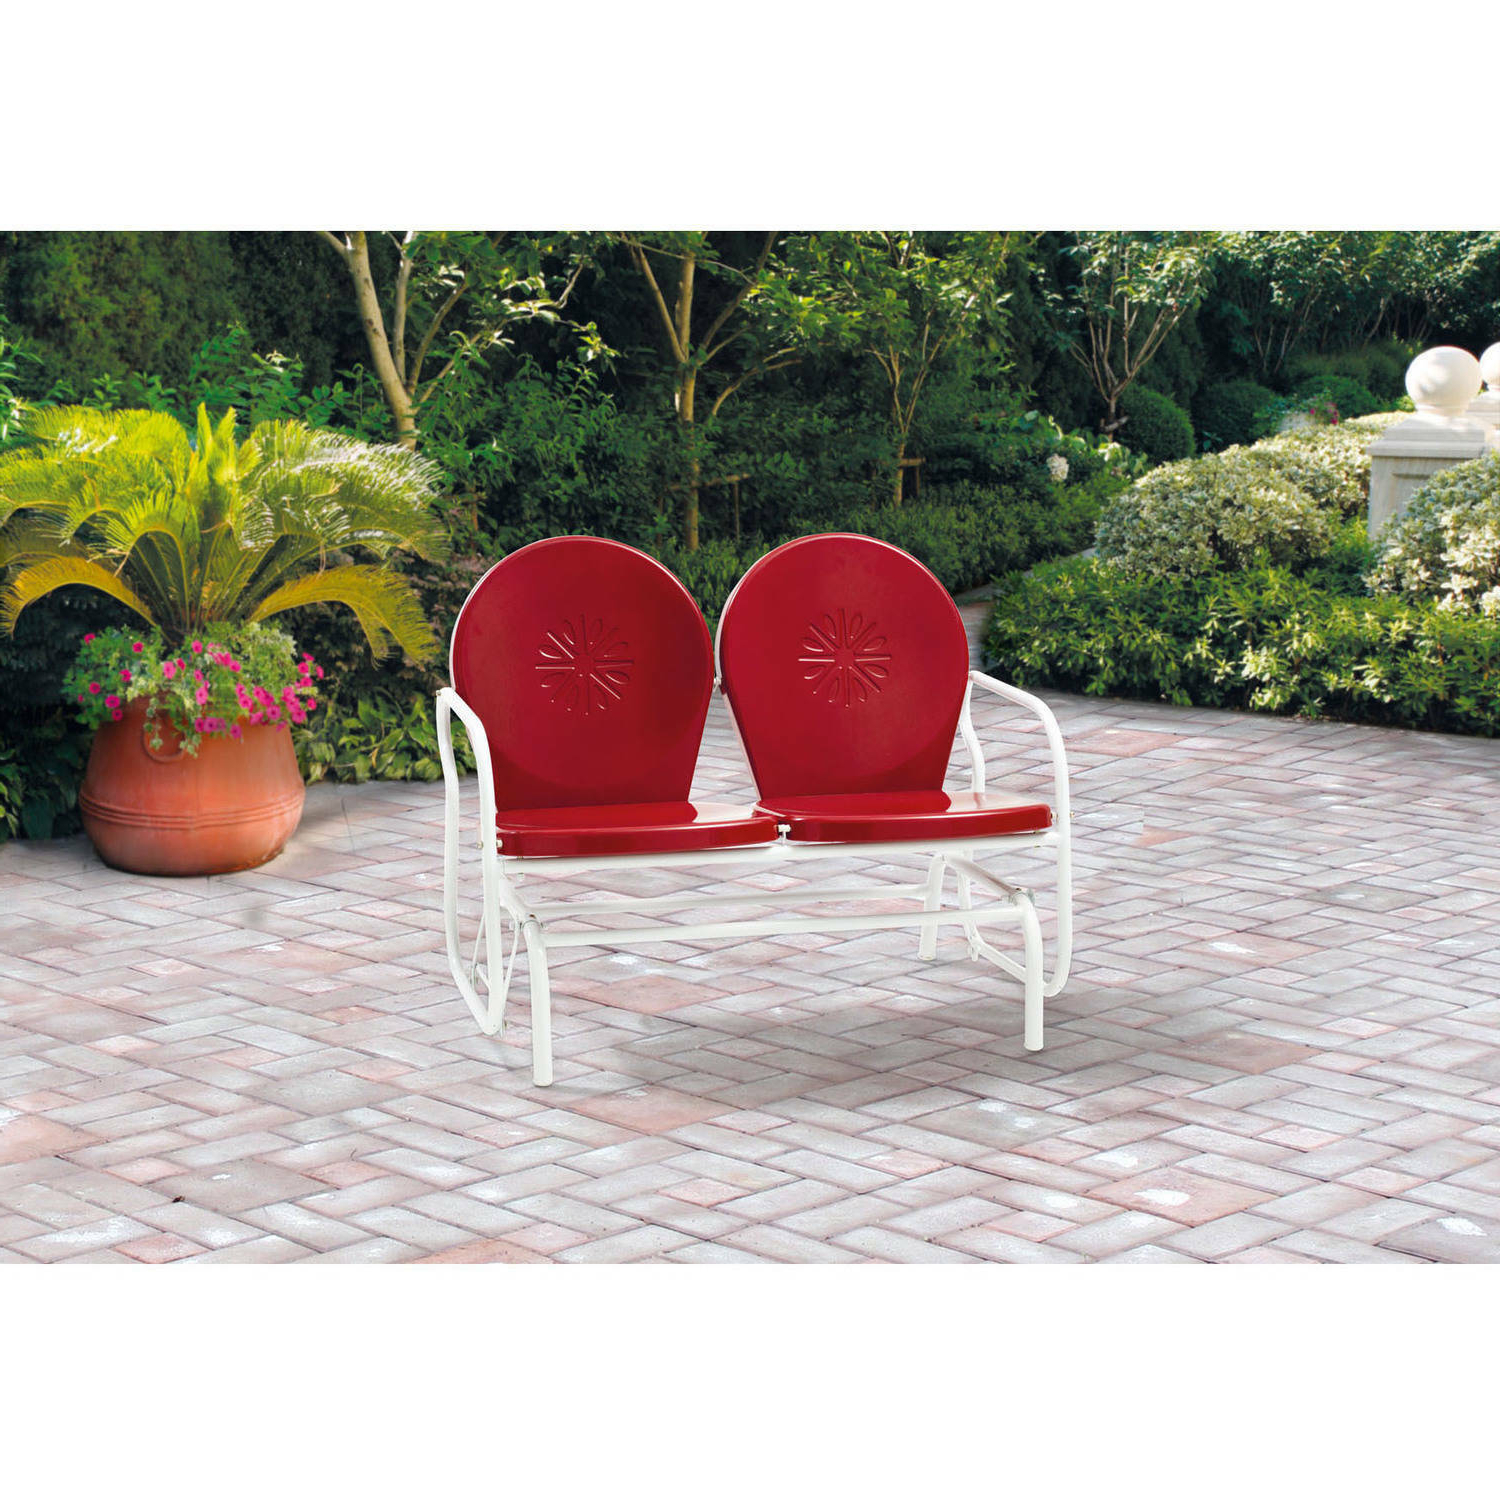 Metal Powder Coat Double Seat Glider Benches In Trendy Retro Metal Glider Garden Seating Outdoor Furniture Yard Patio Red Chair Seats 2 (Gallery 12 of 30)